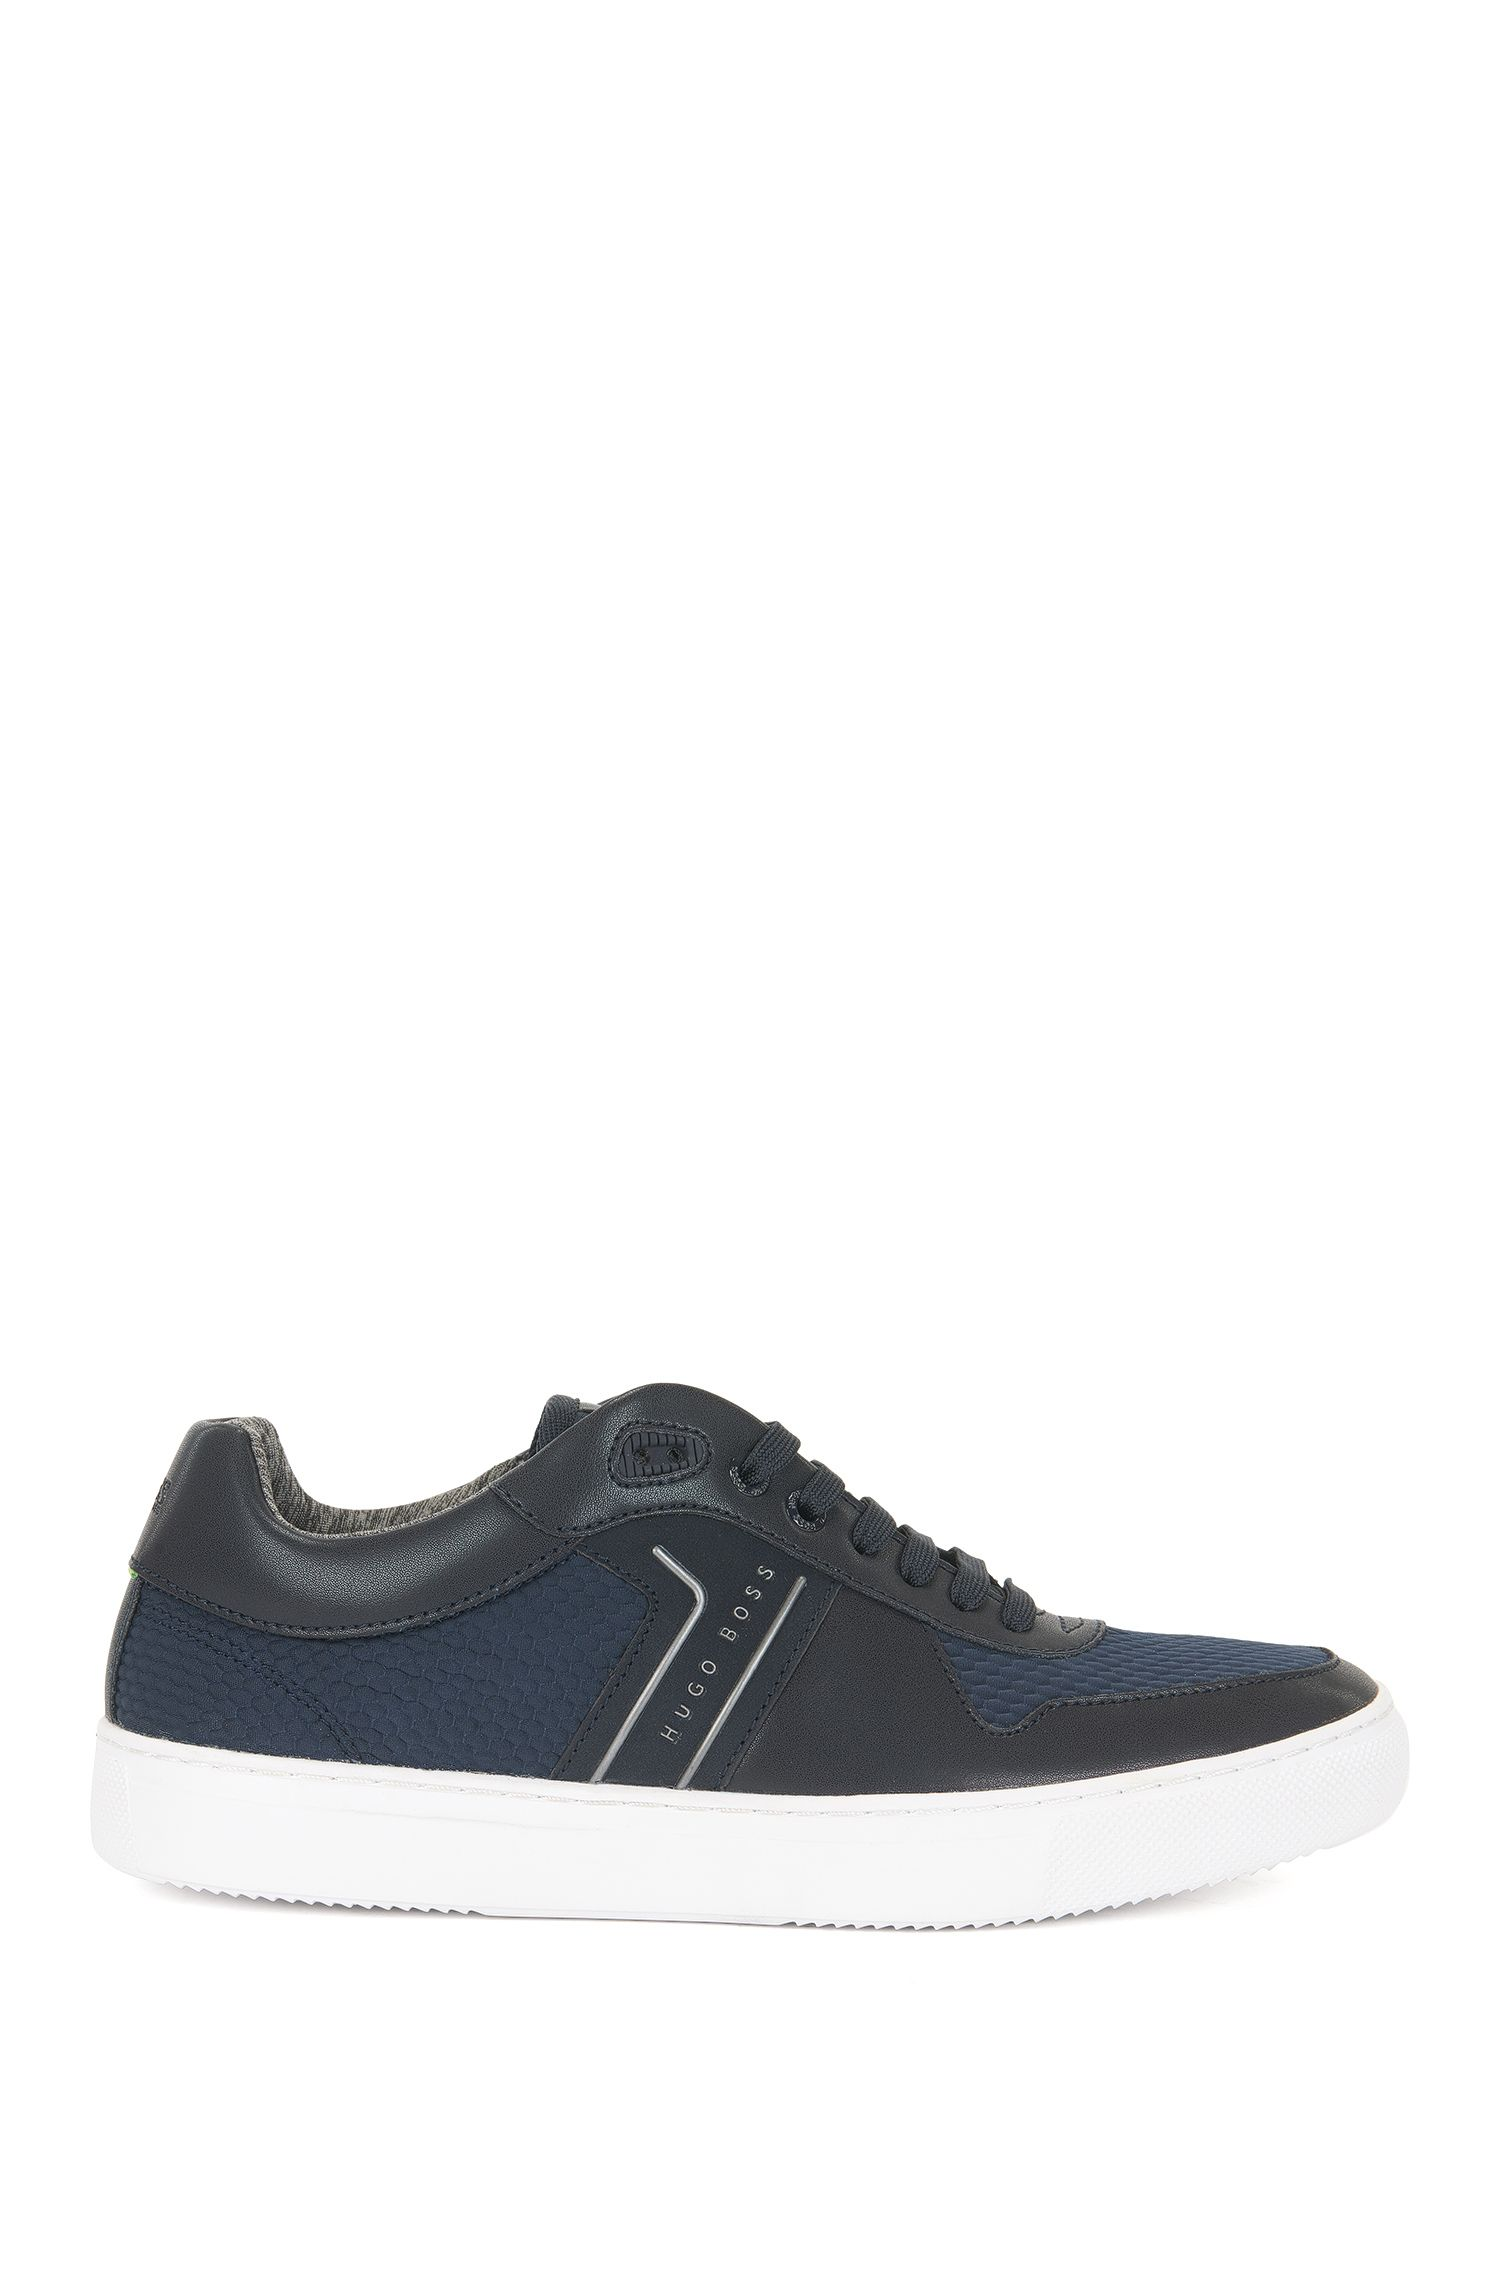 Tennis-style trainers with Strobel construction